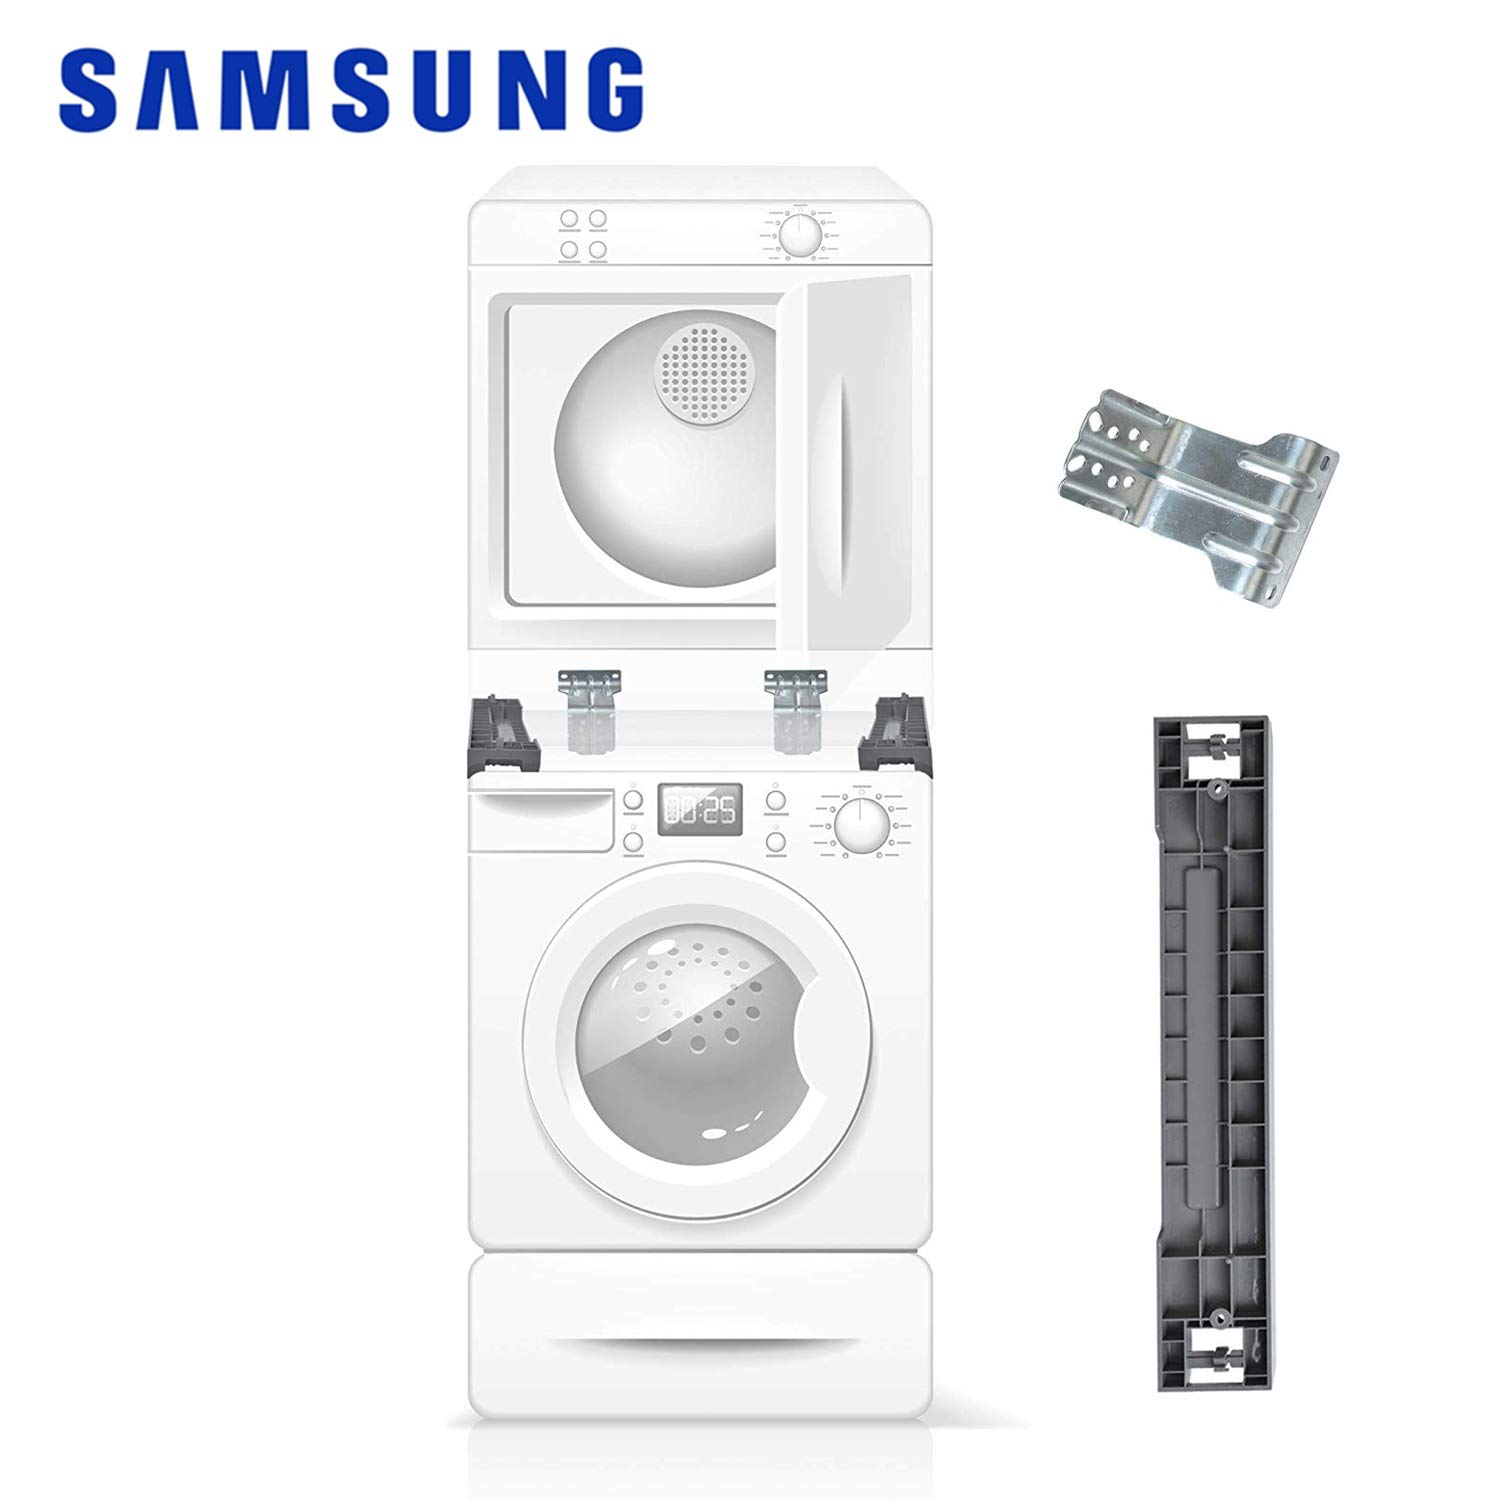 CalPalmy Stacking Kit for Samsung Washer & Dryer - 27'' Front Load Laundry SKK-7A, SK-5A, SK-5AXAA by CalPalmy